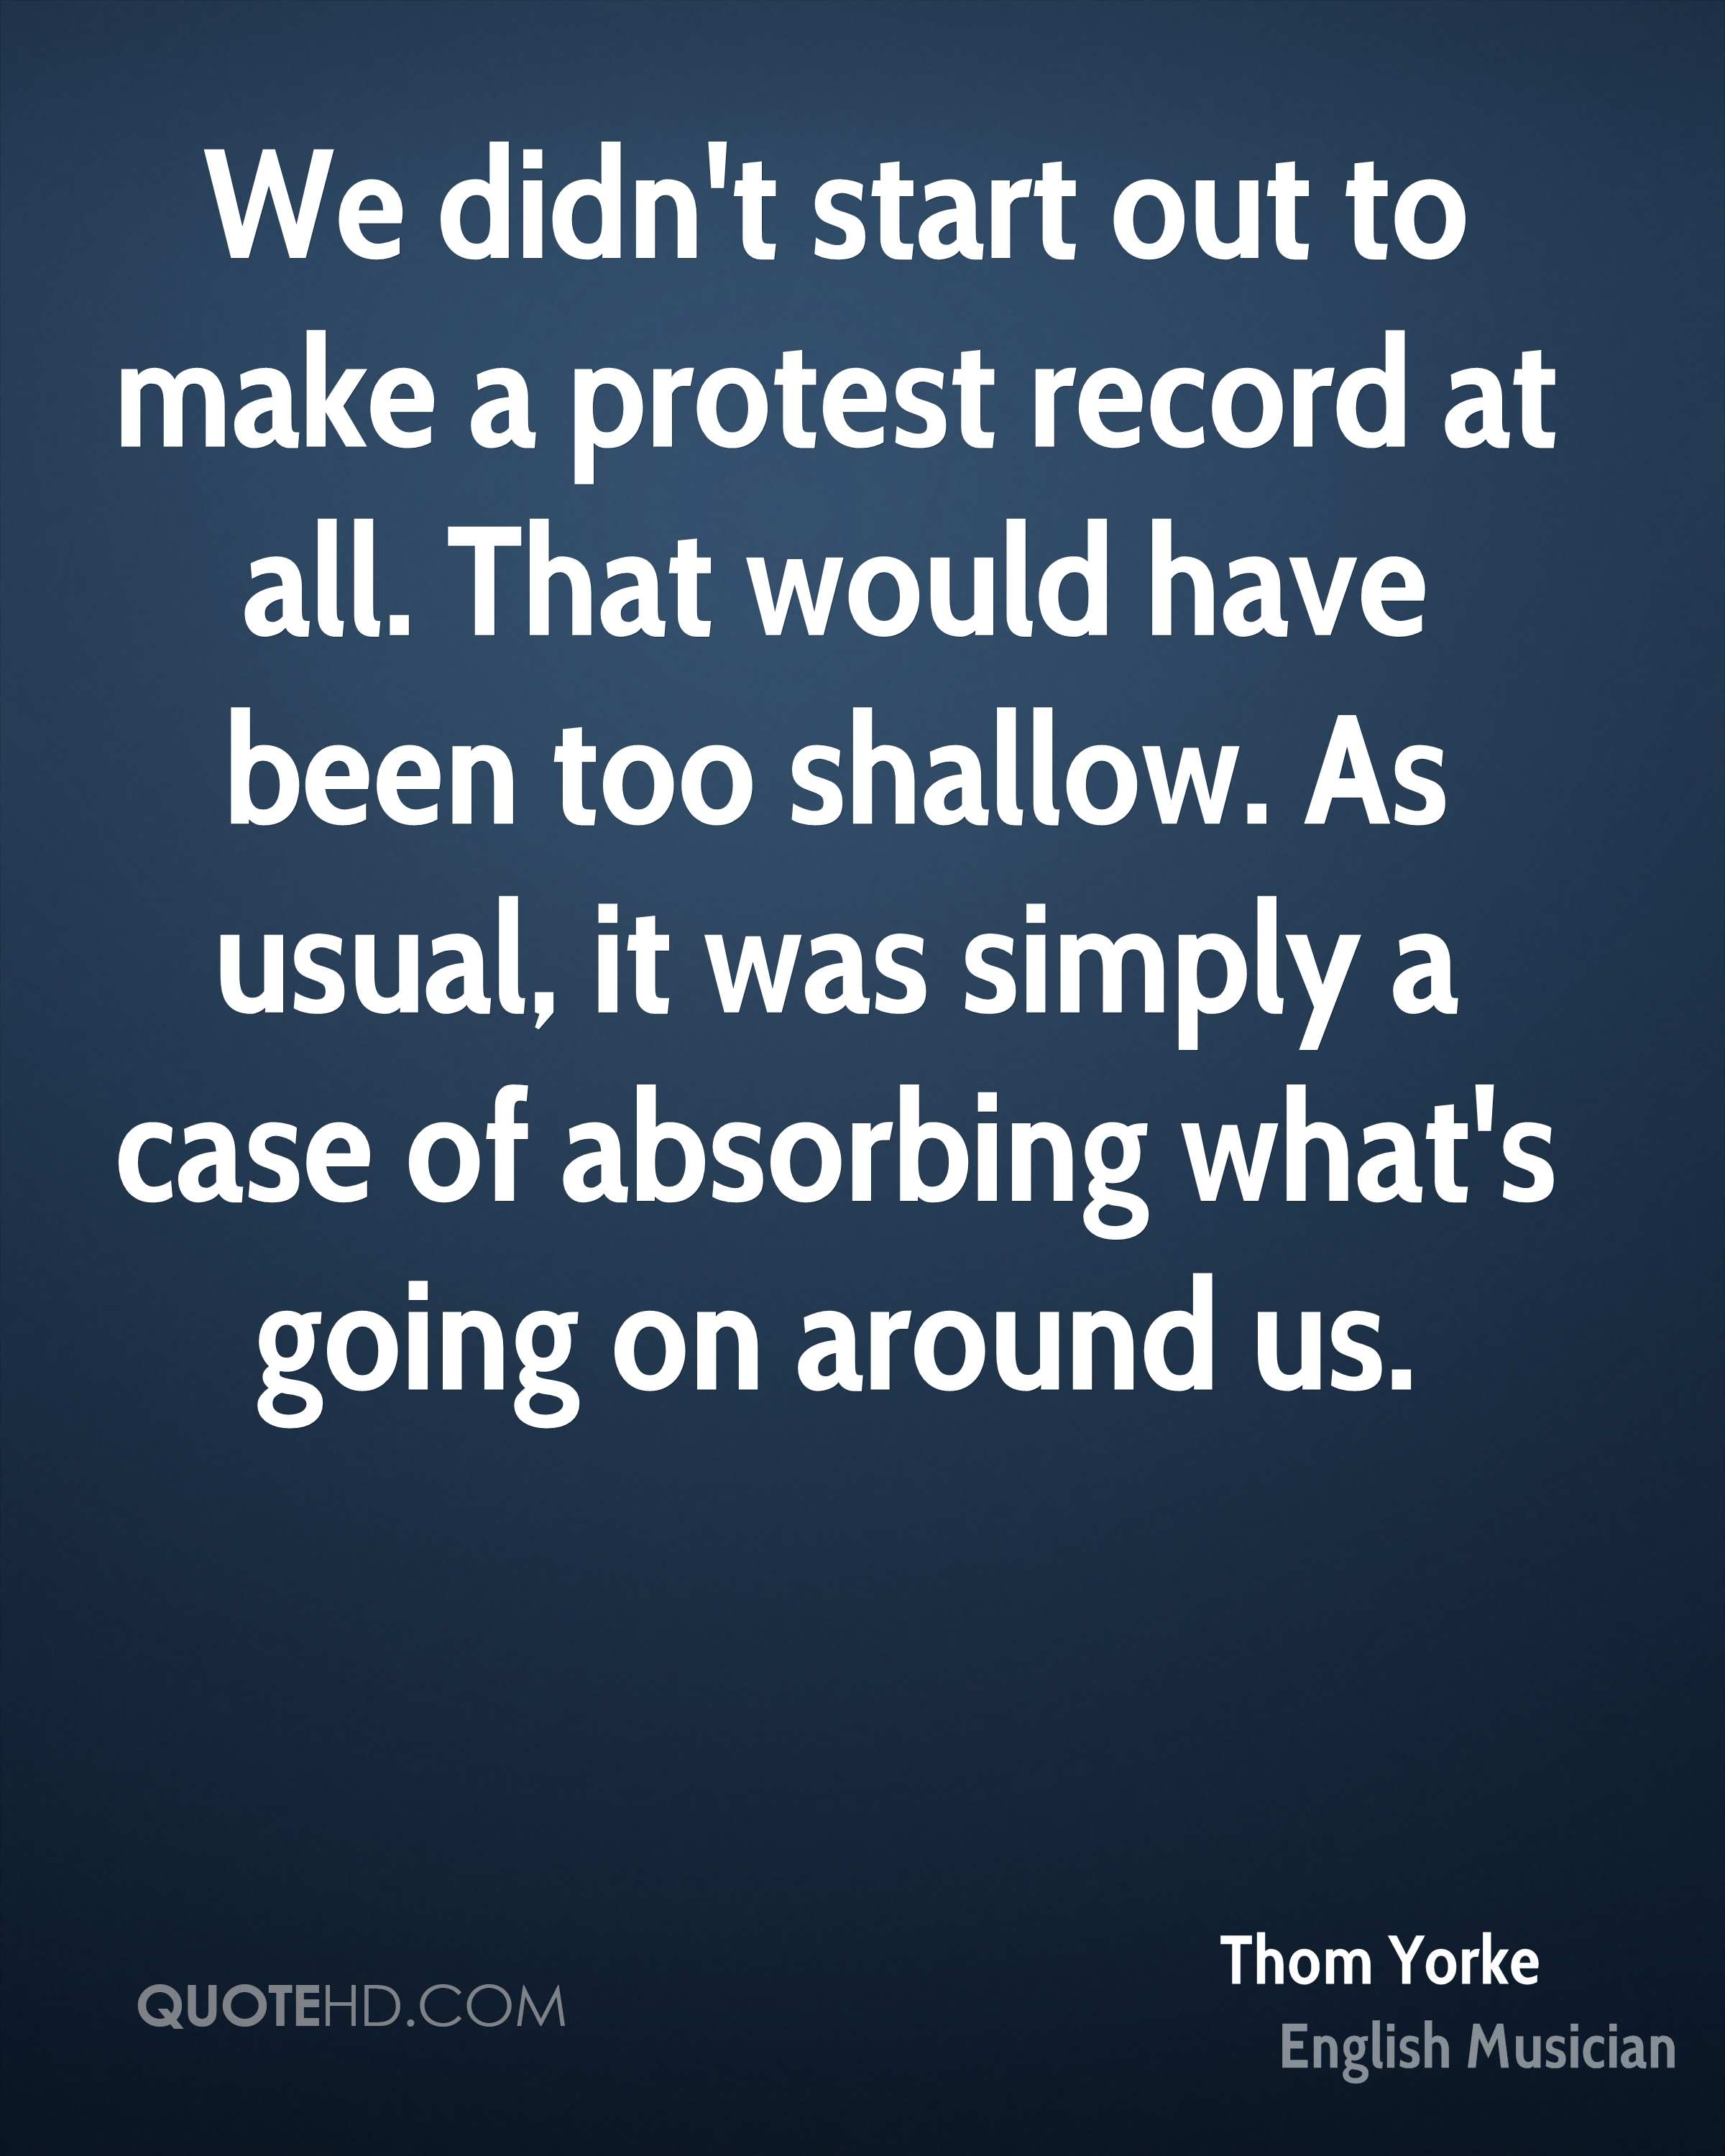 We didn't start out to make a protest record at all. That would have been too shallow. As usual, it was simply a case of absorbing what's going on around us.